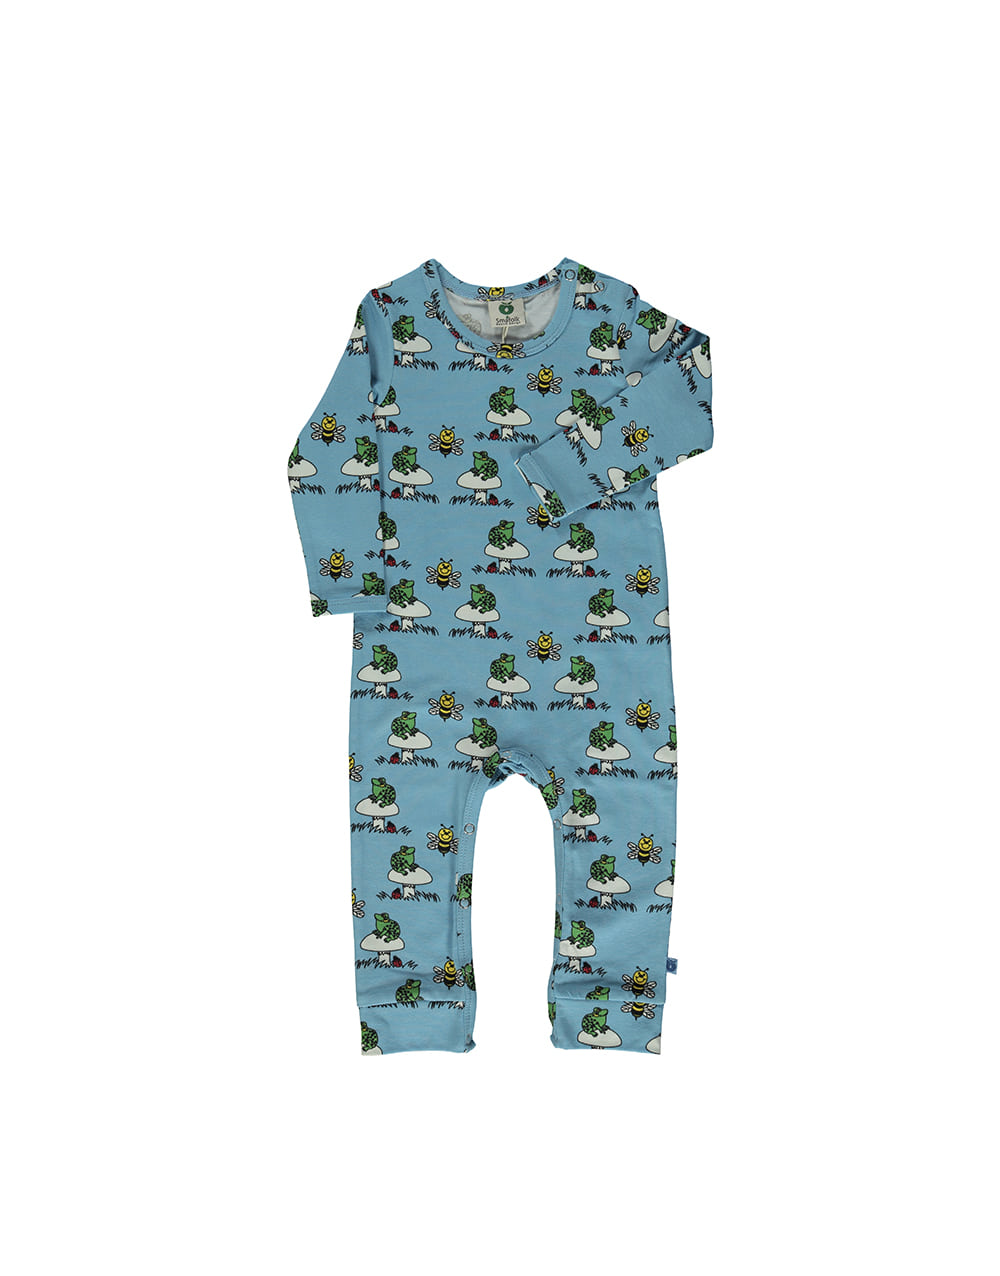 SMAFOLK  Suit with Frog  Blue Grotto